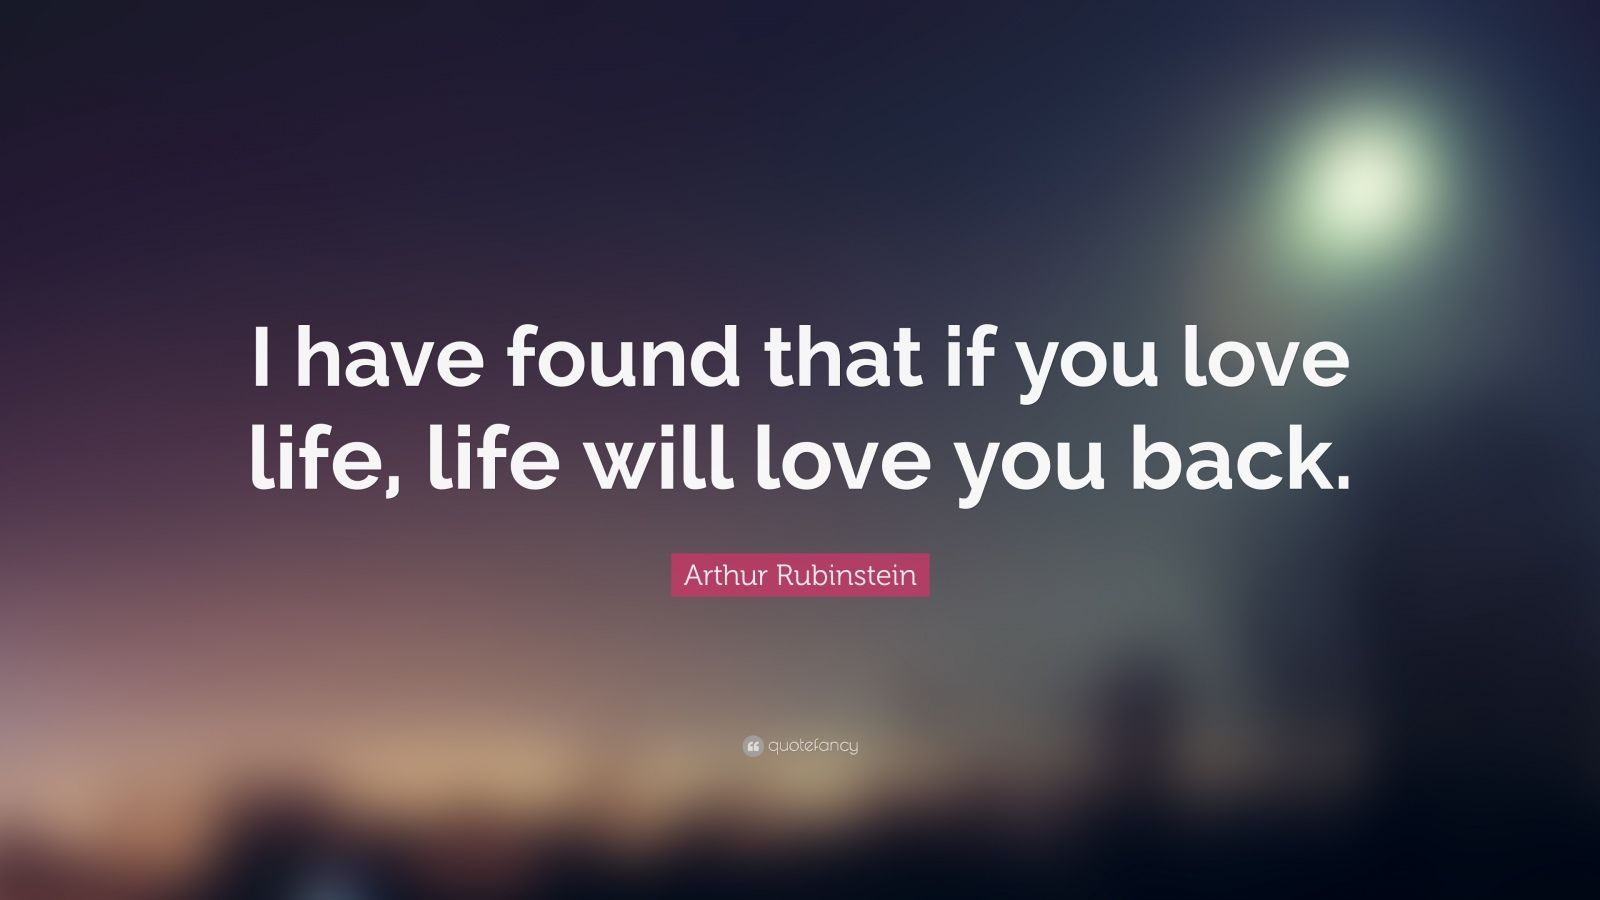 Positive Quotes: U201cI Have Found That If You Love Life, Life Will Love